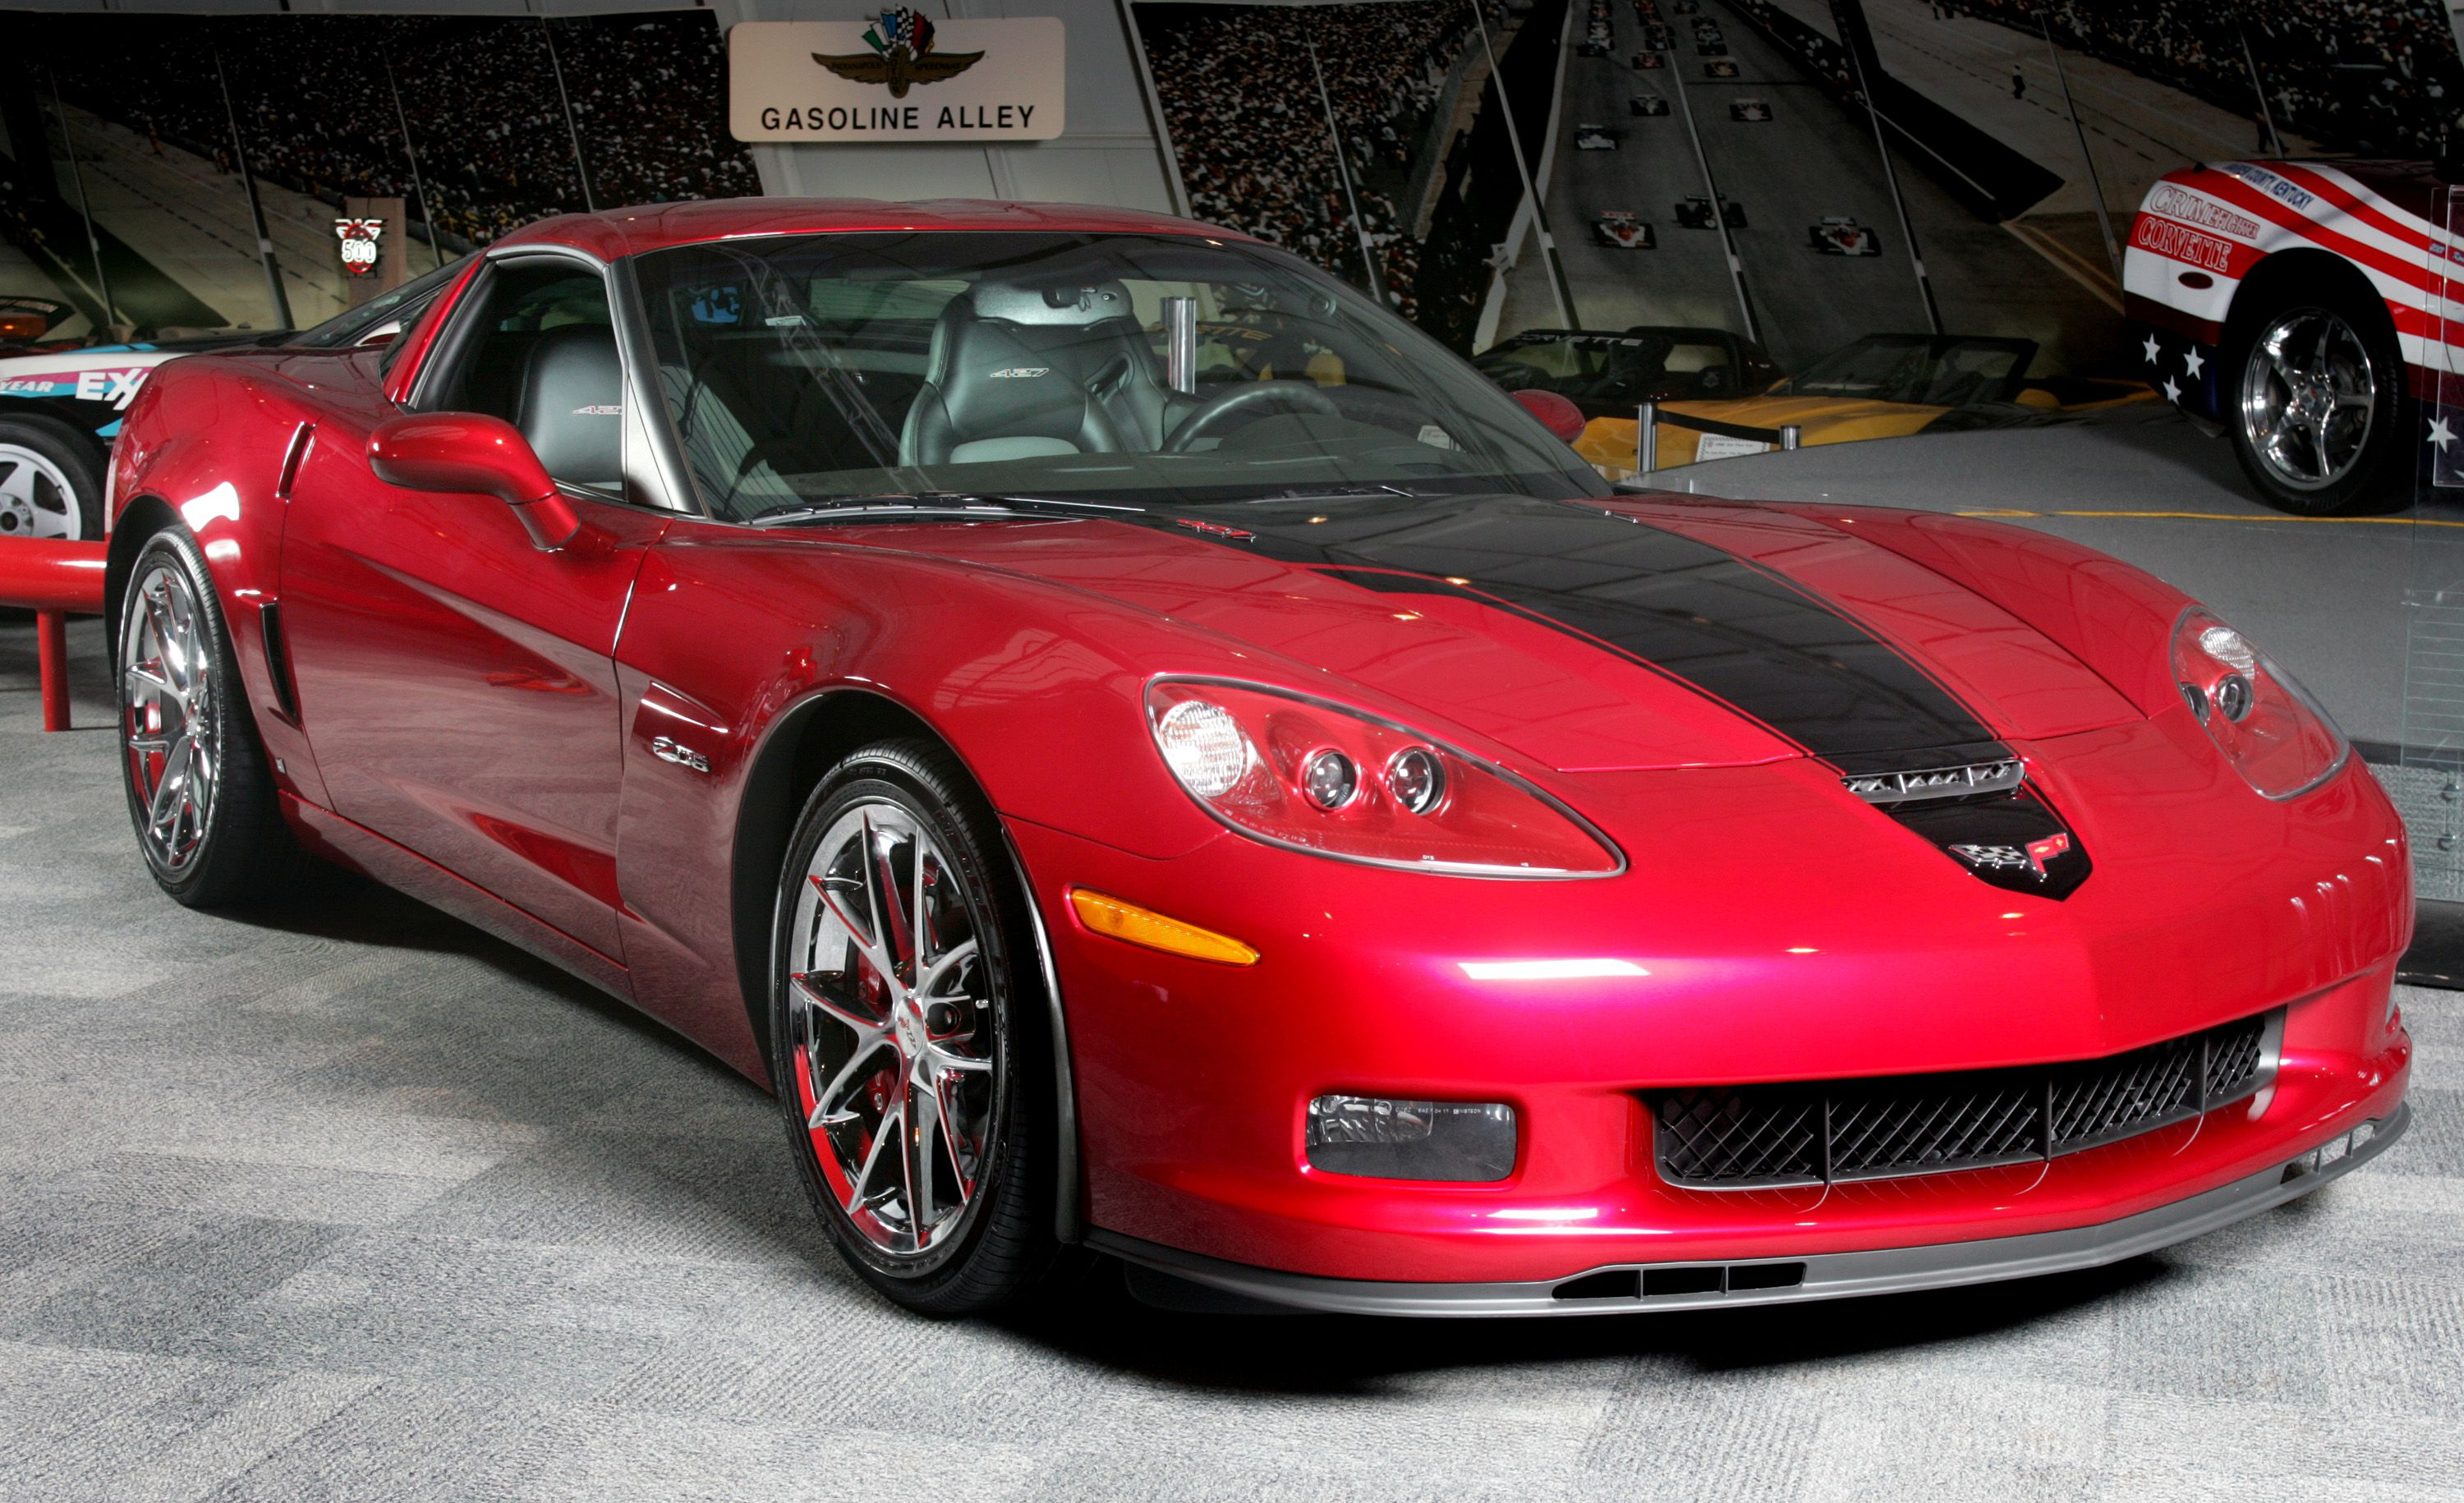 How To Buy a Used Corvette